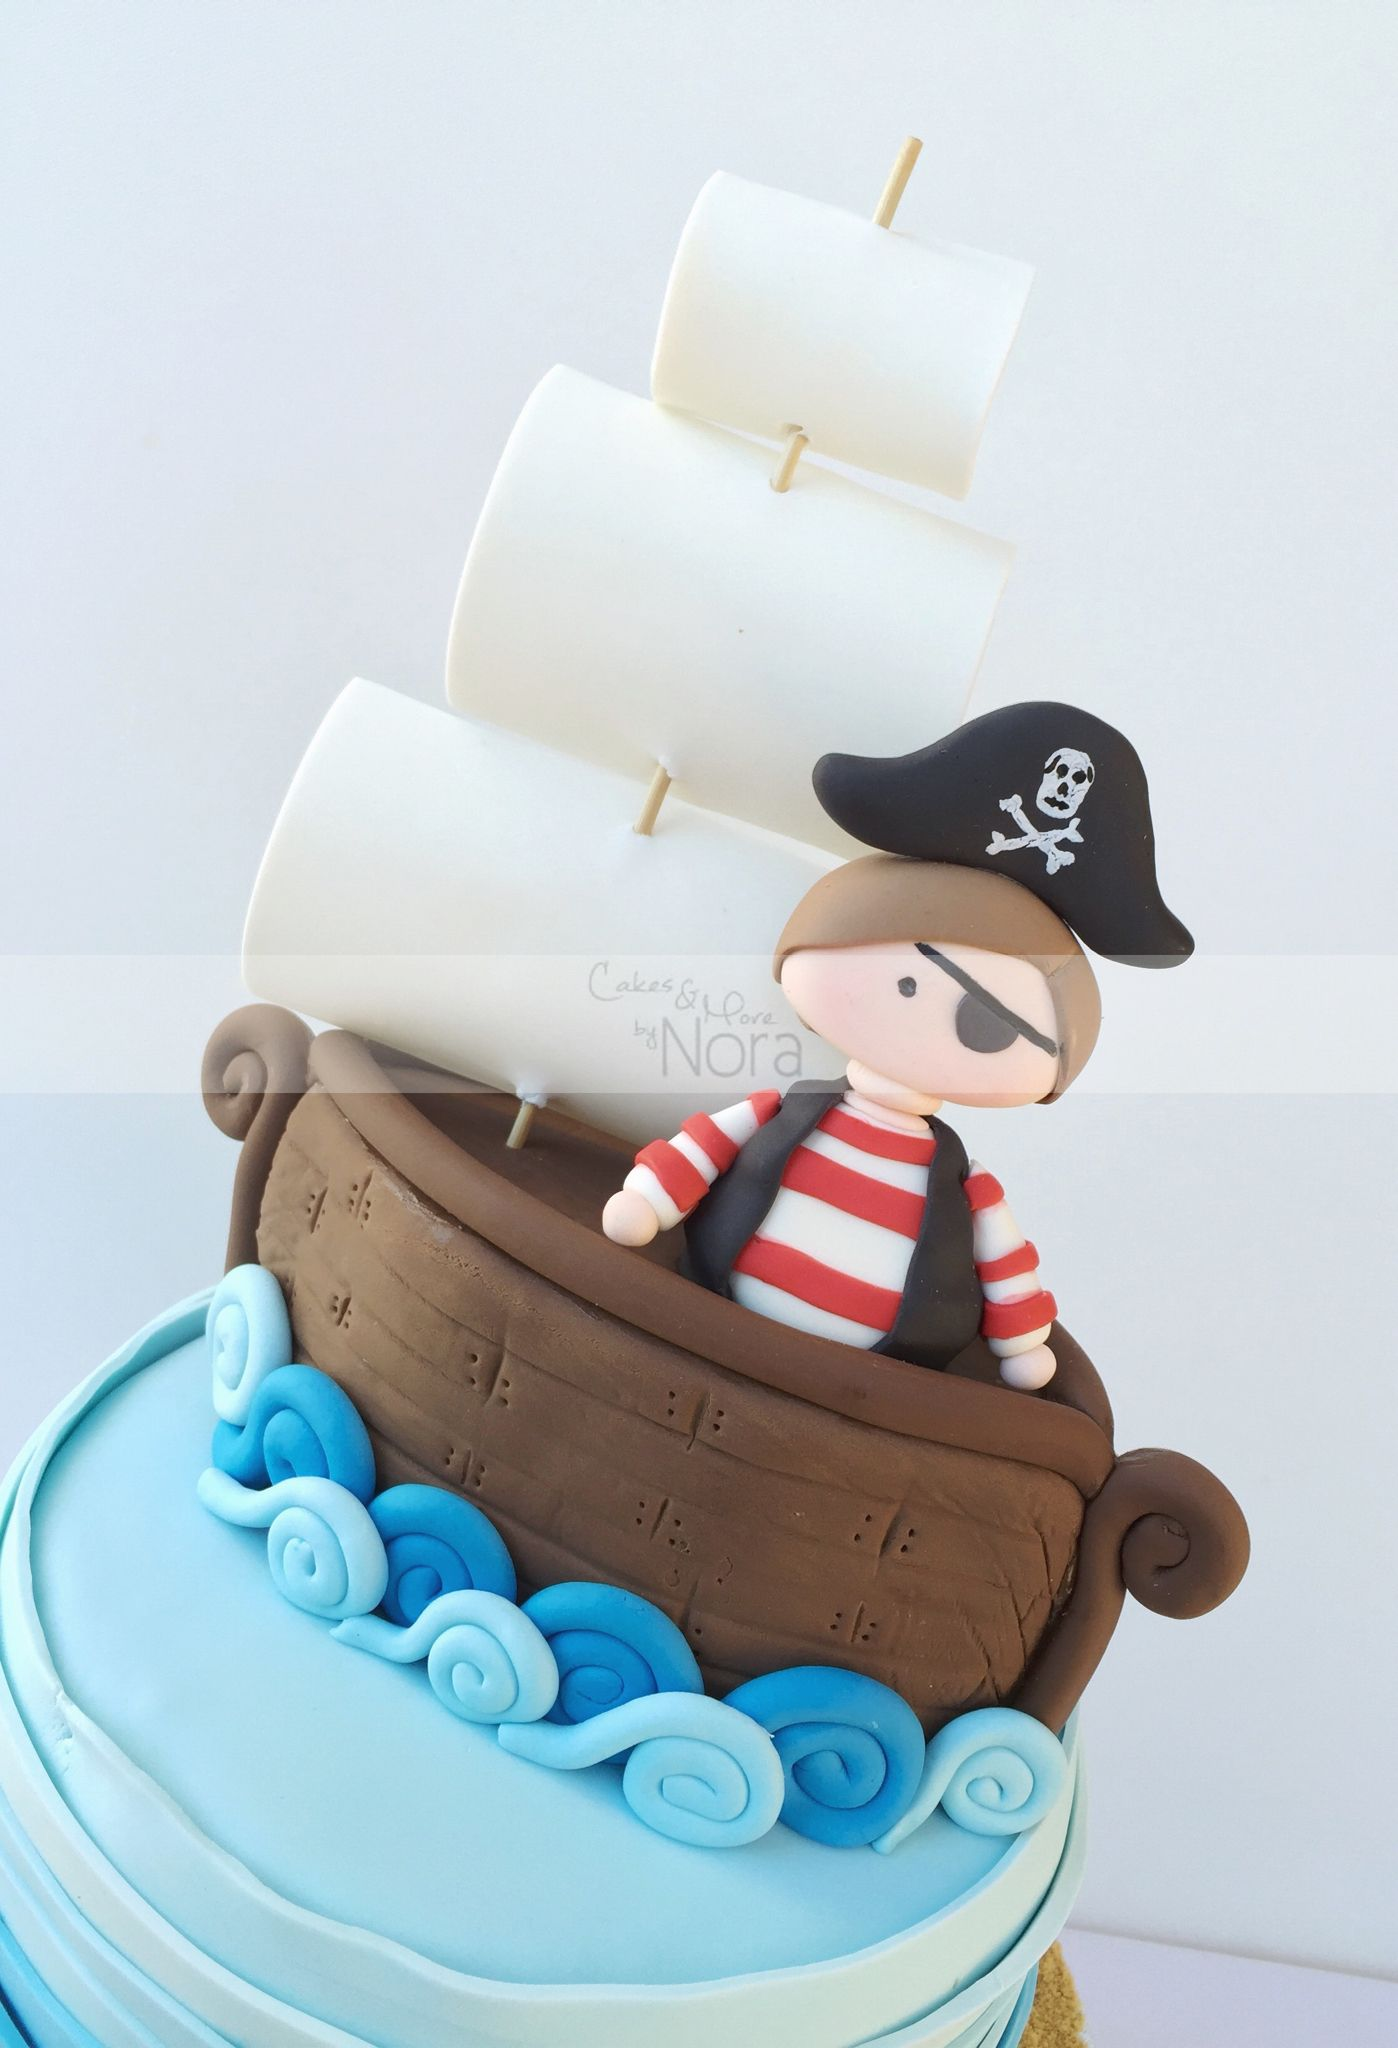 Pirate Cake Topper Cakes And More By Nora Cake Toppers